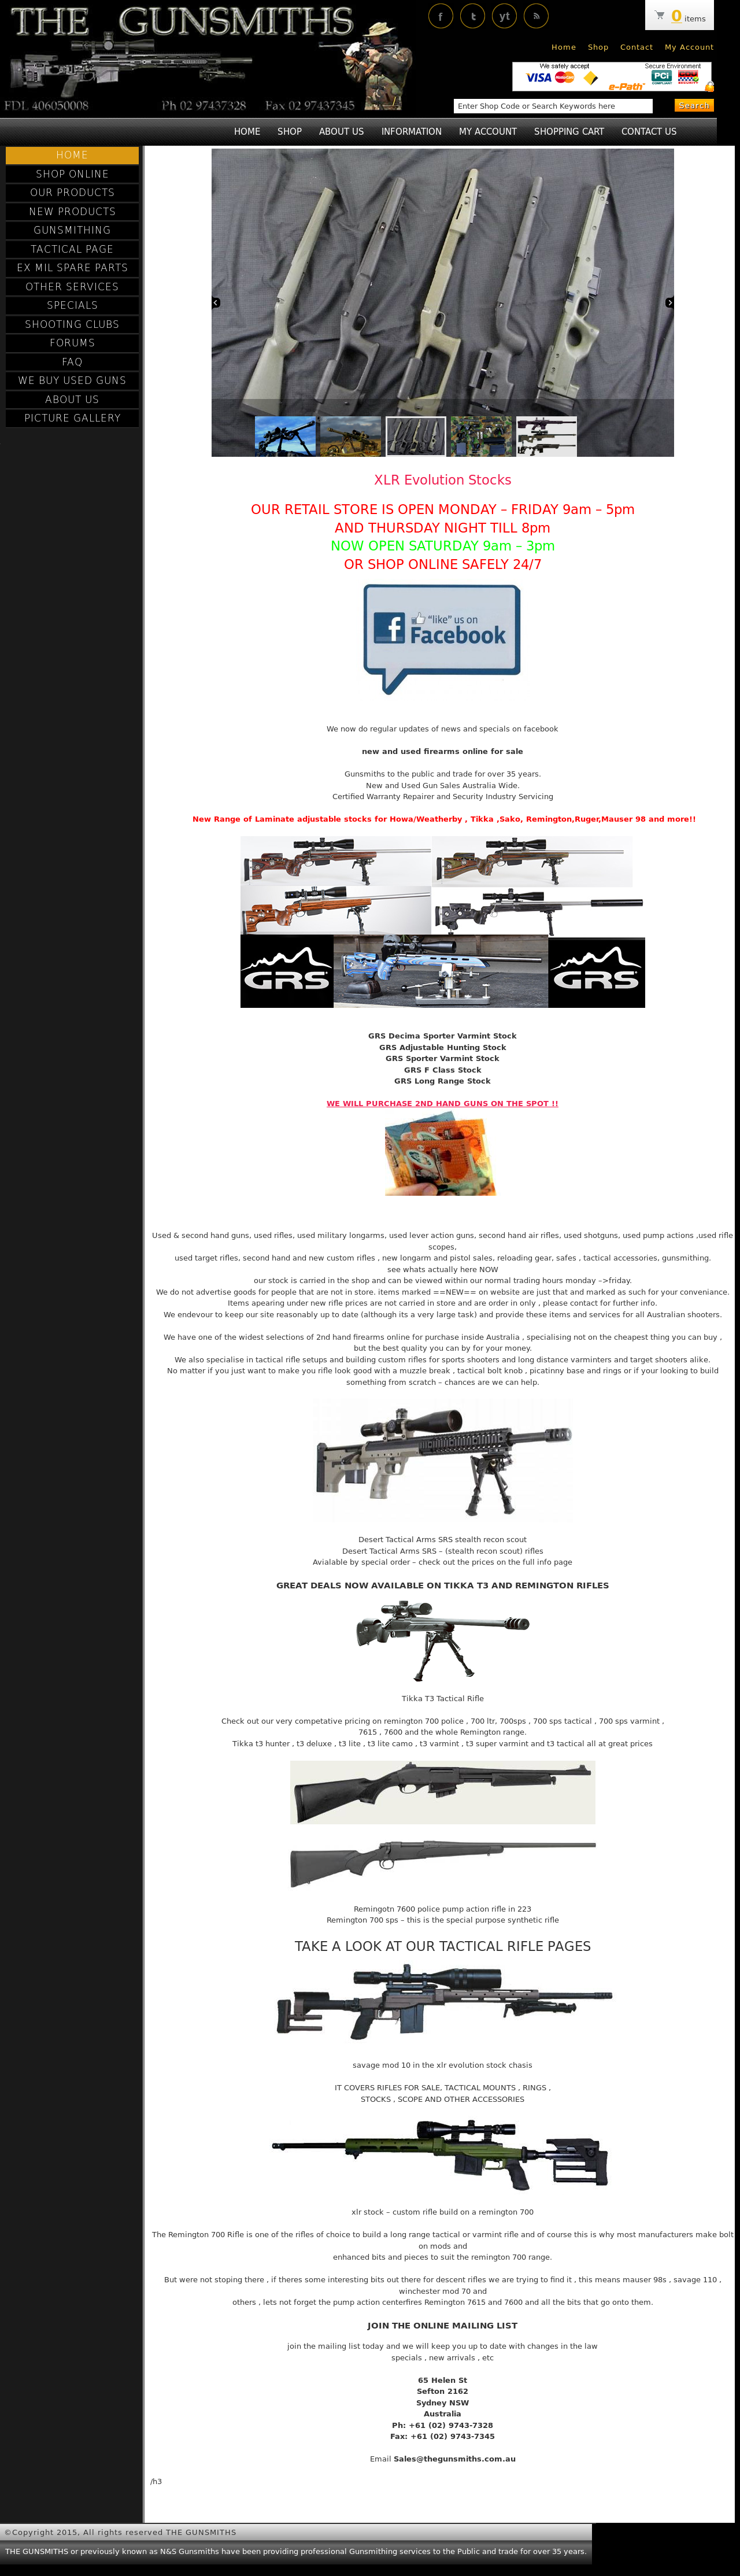 The Gunsmiths Competitors, Revenue and Employees - Owler